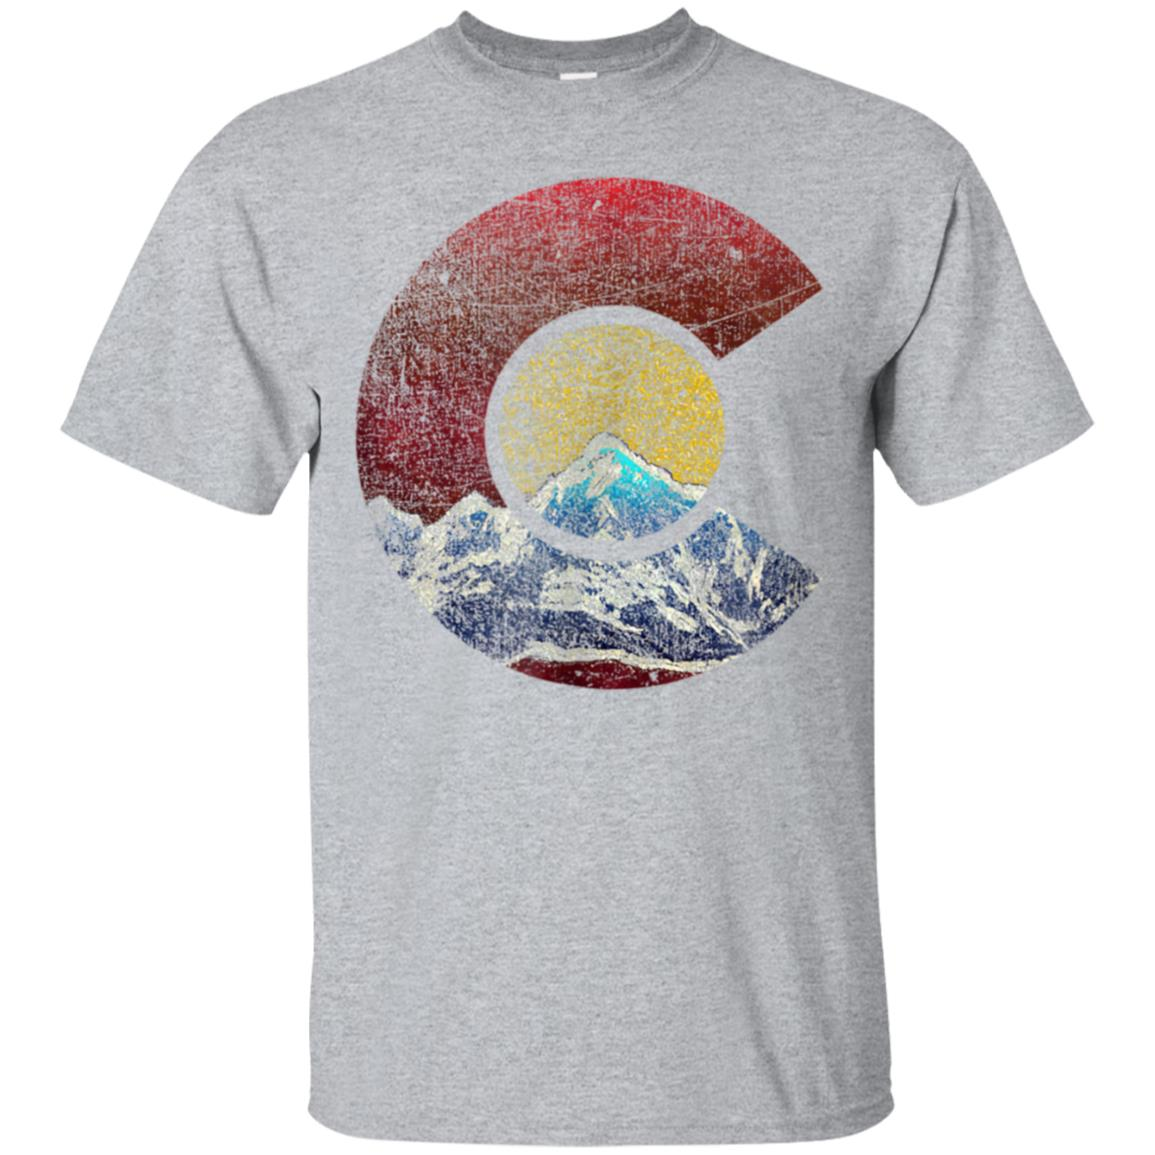 Colorado Shirt with Flag Themed Mountain 99promocode